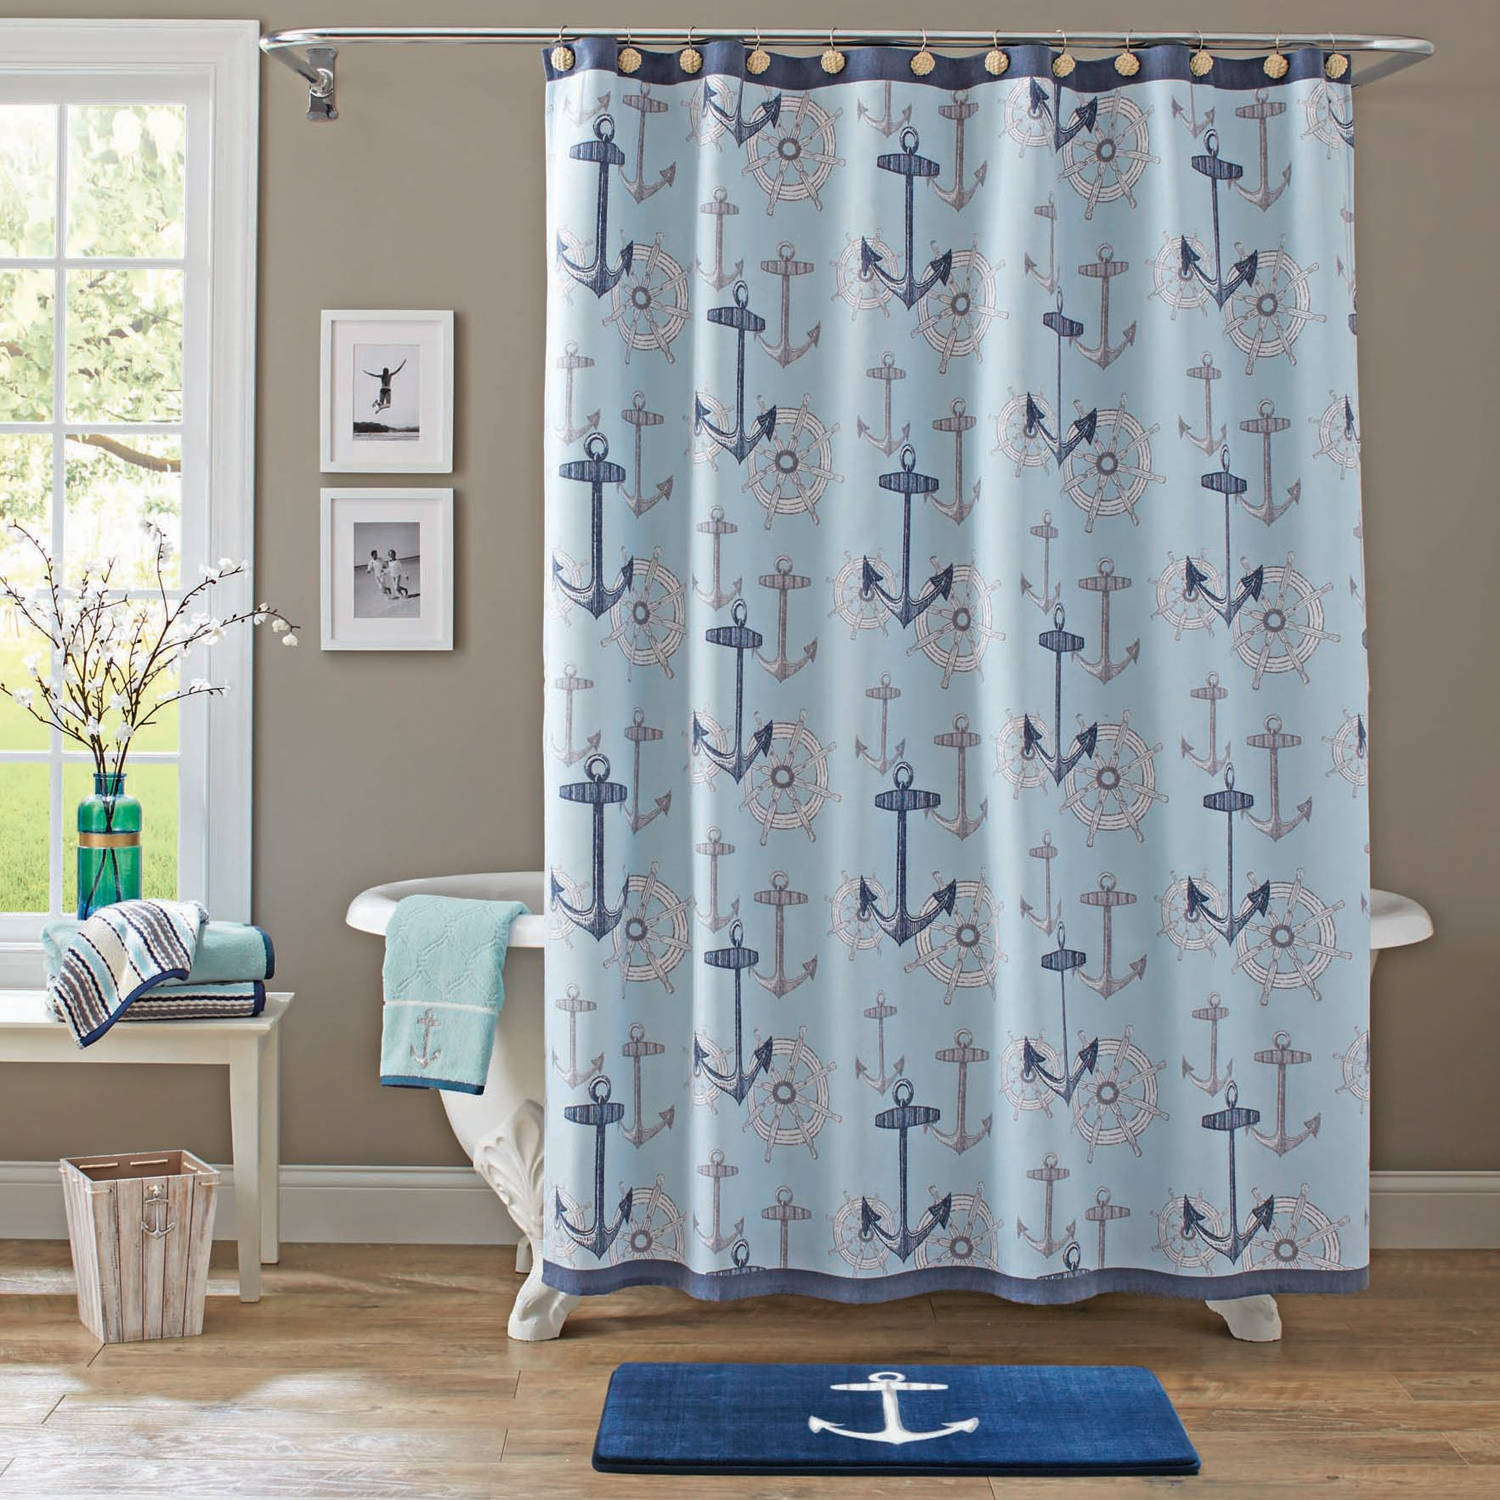 Better Homes and Gardens Nautical Shower Curtain - Walmart.com